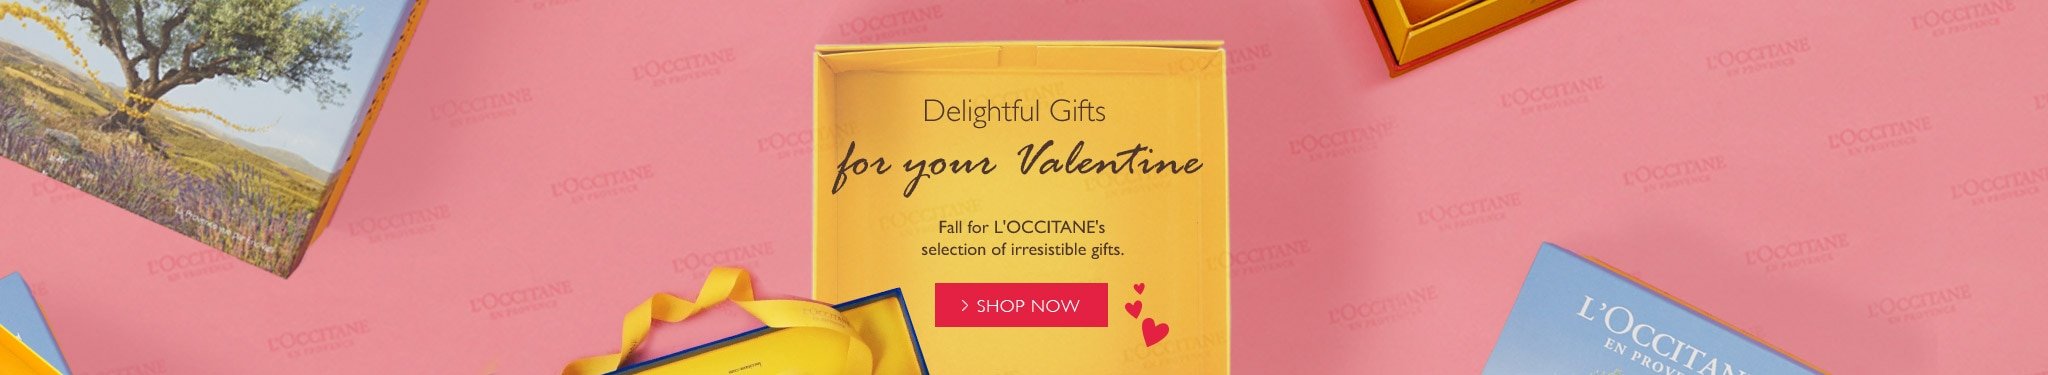 Delightful Gifts for your Valentine